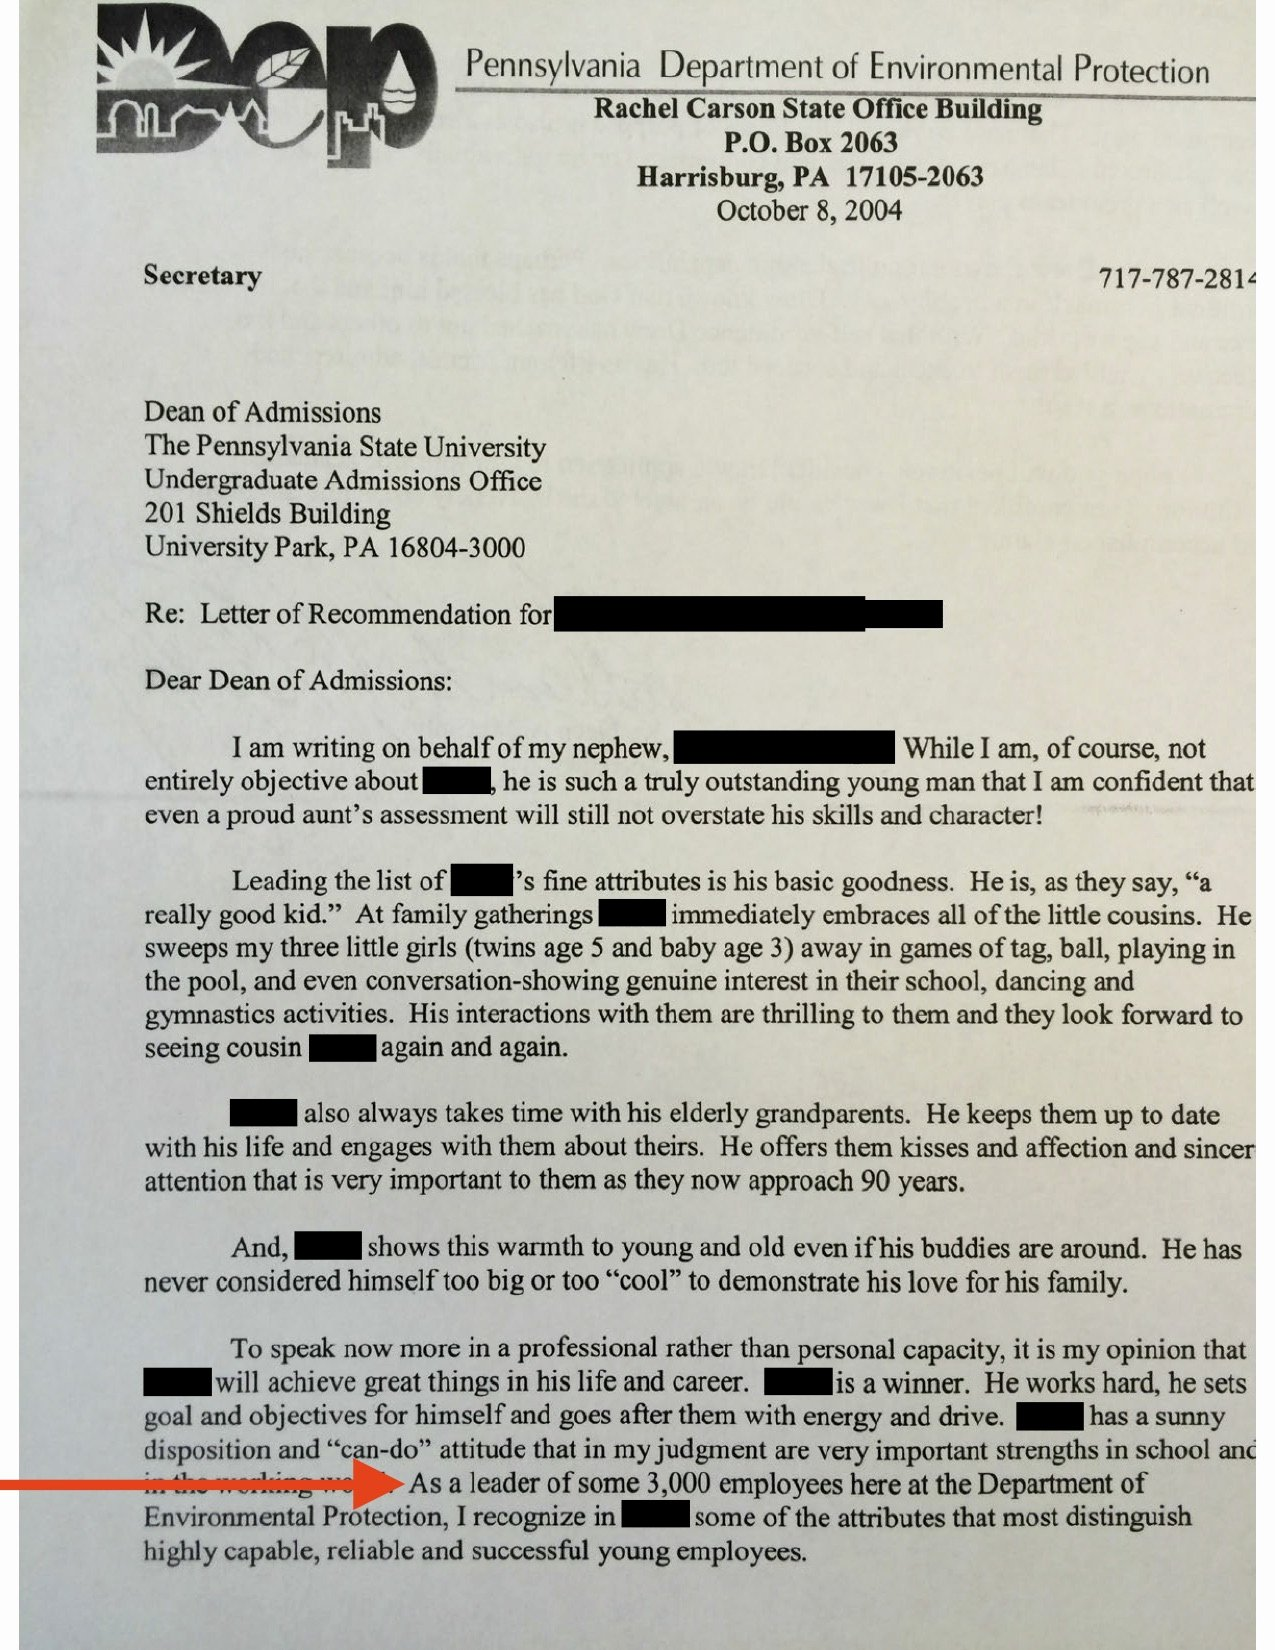 Letter Of Recommendation Pa School Awesome Pa Cabinet Official Mcginty Used State Letterhead while